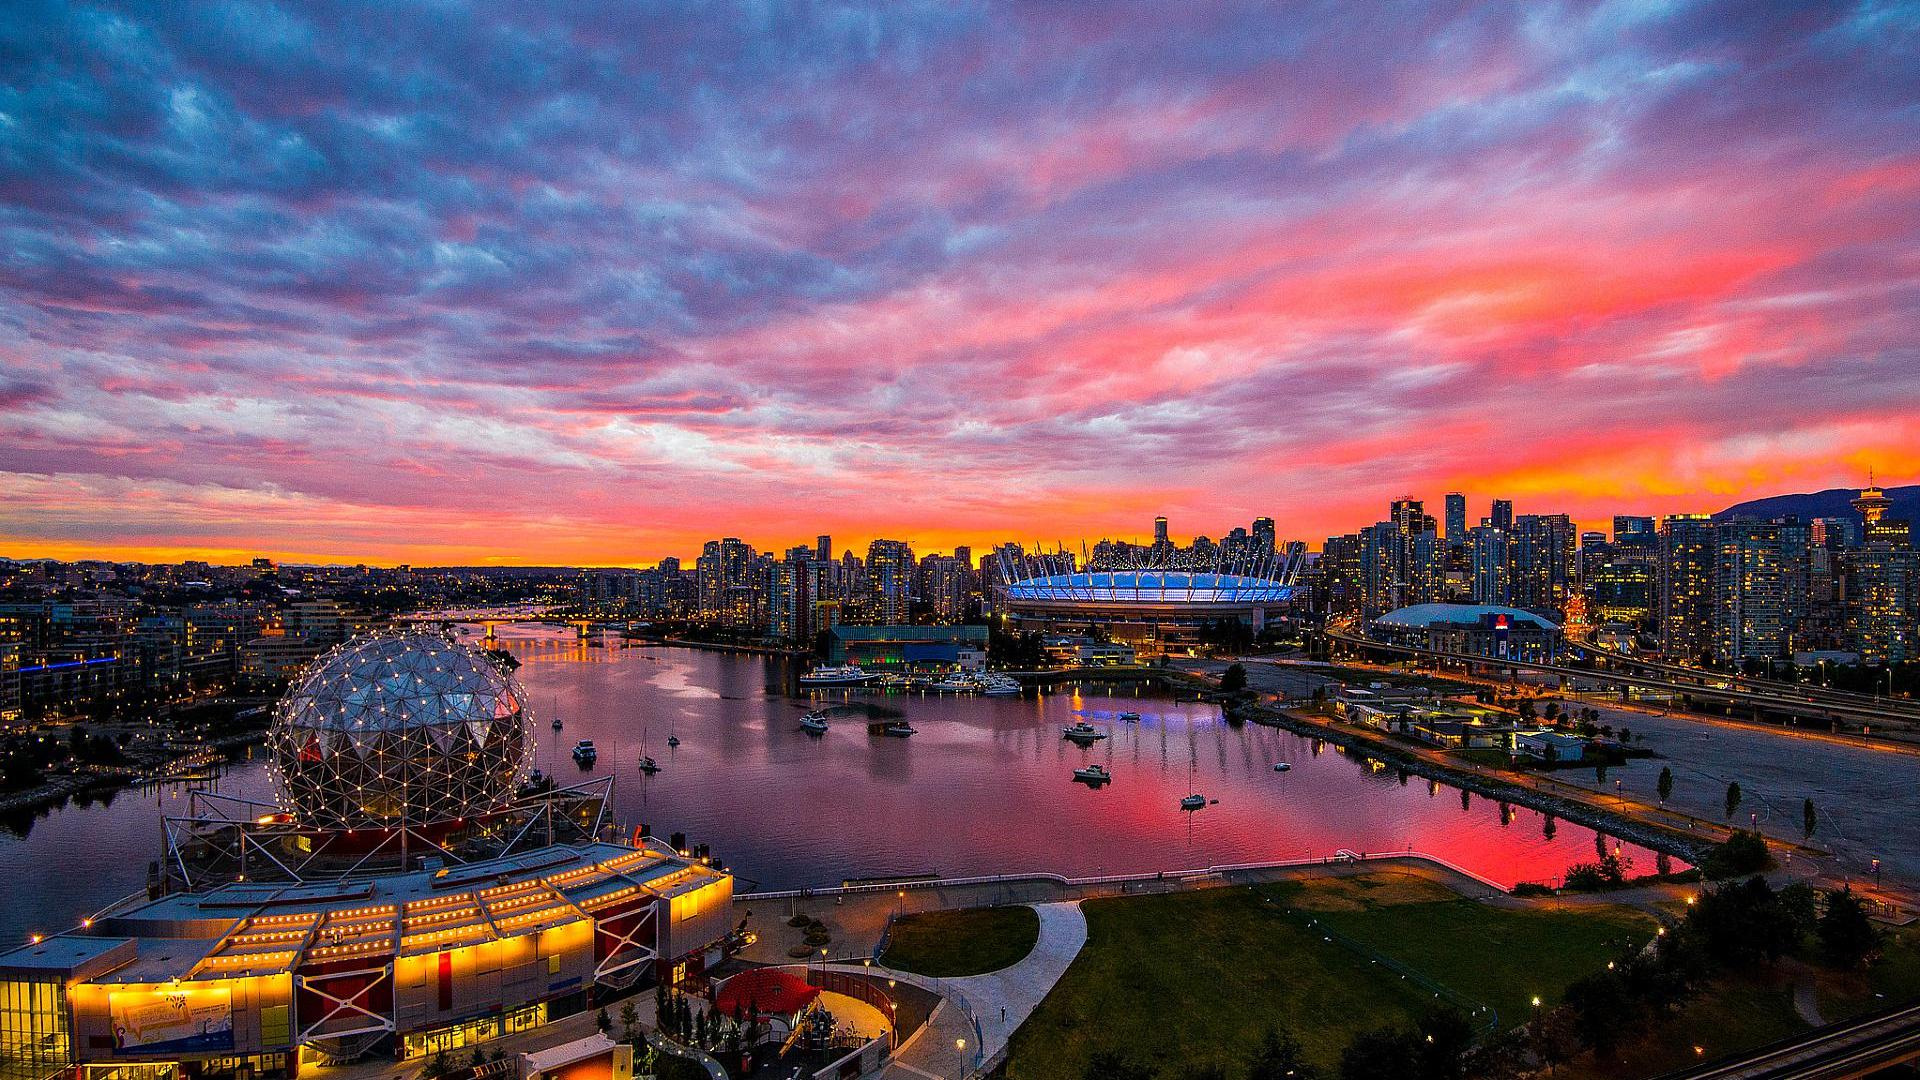 vancouver wallpaper full screen high resolution download free